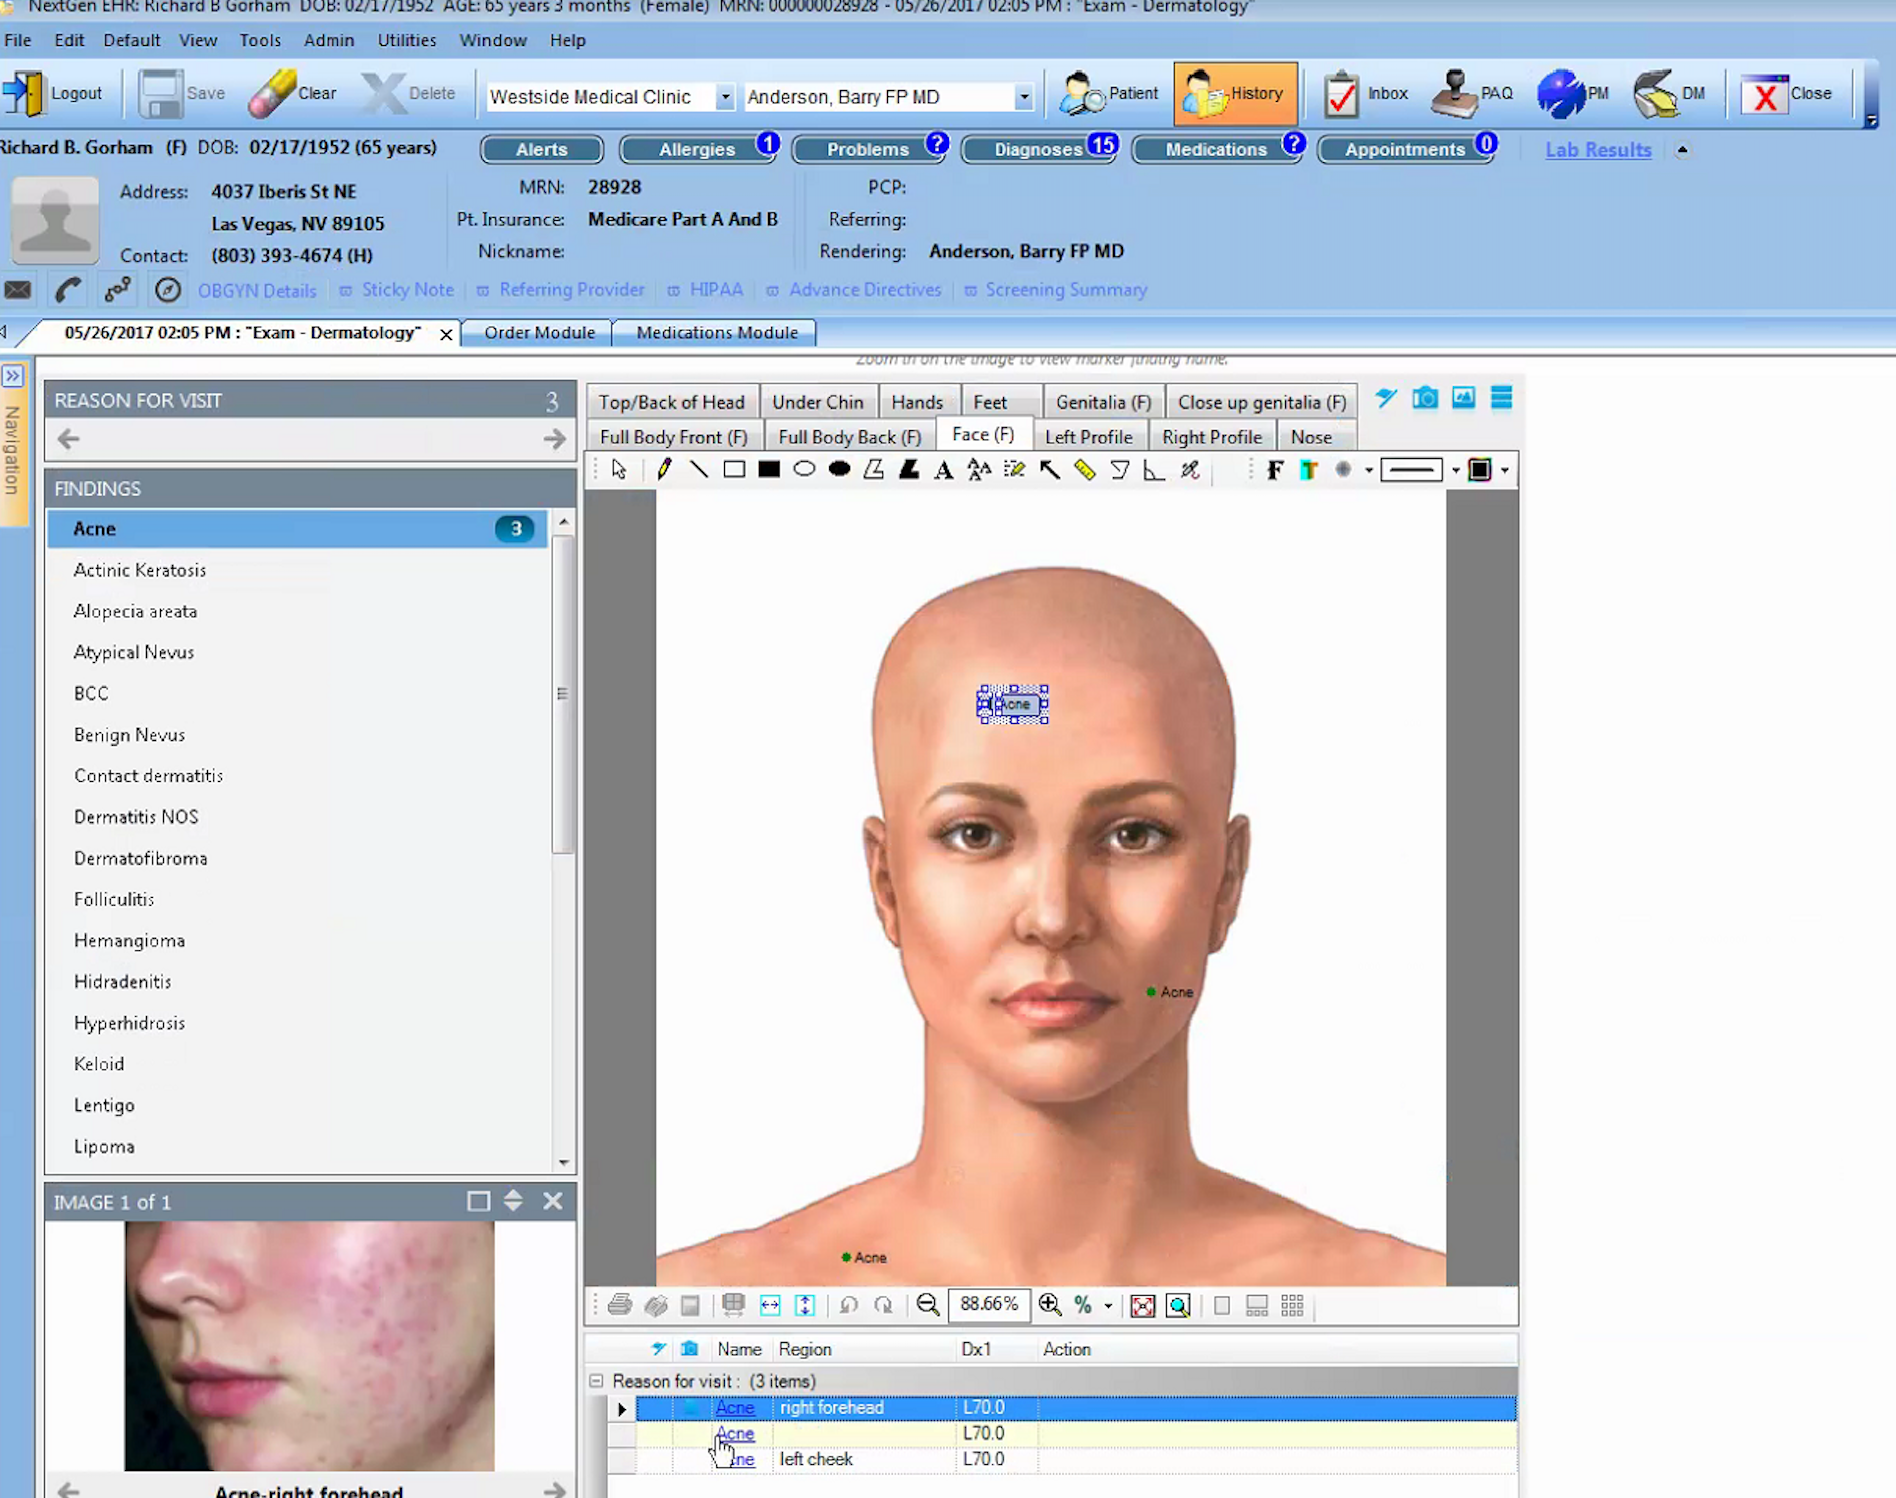 NextGen Healthcare - Graphical exam tool